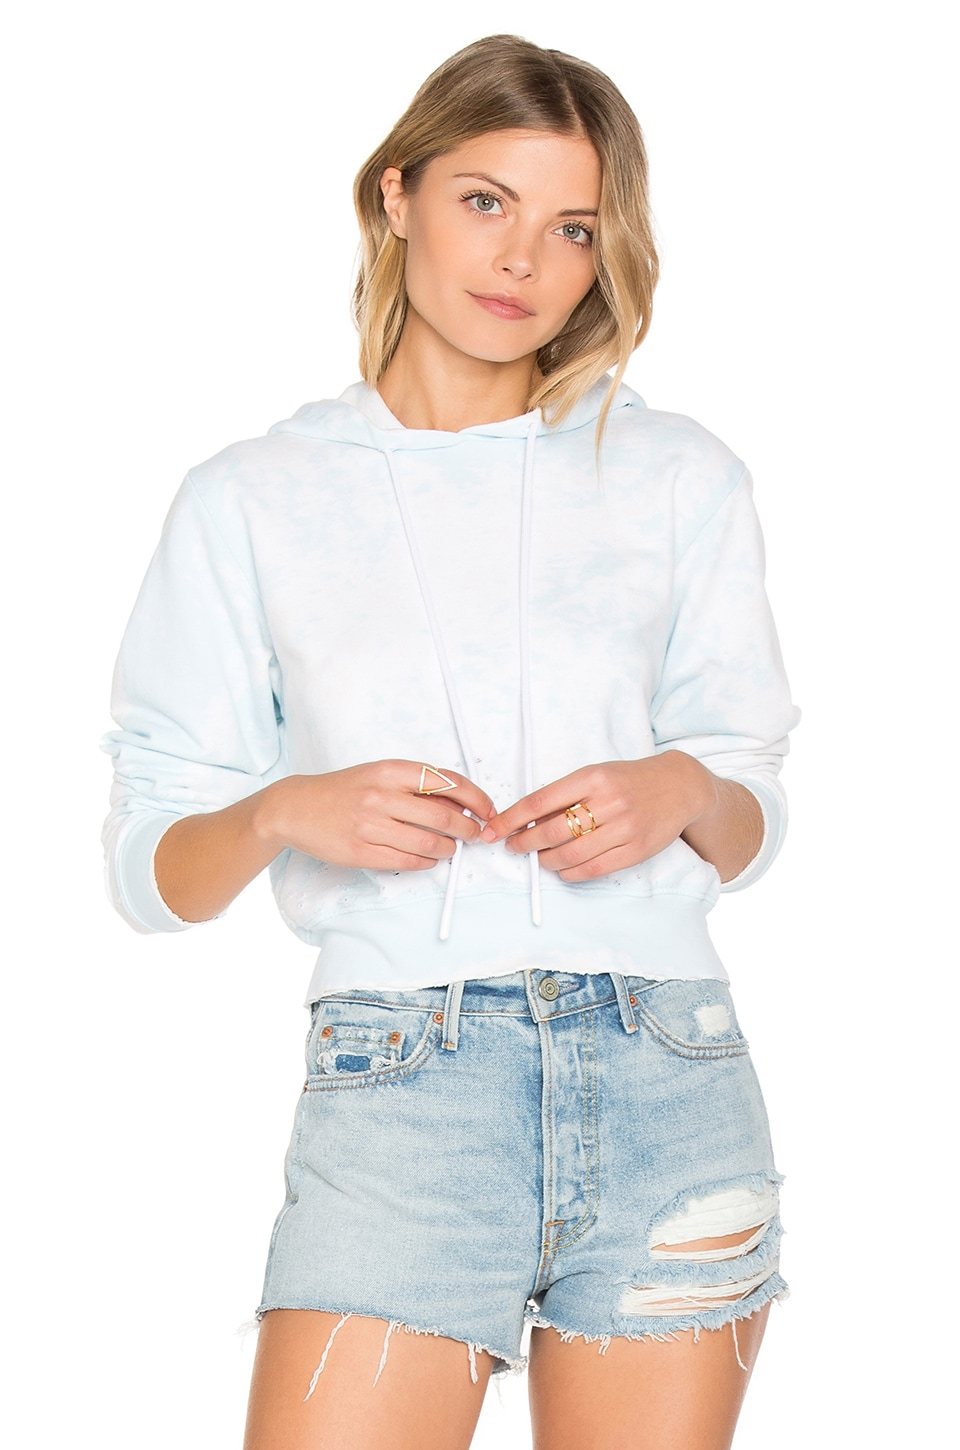 The Milan Cropped Pullover by Cotton Citizen